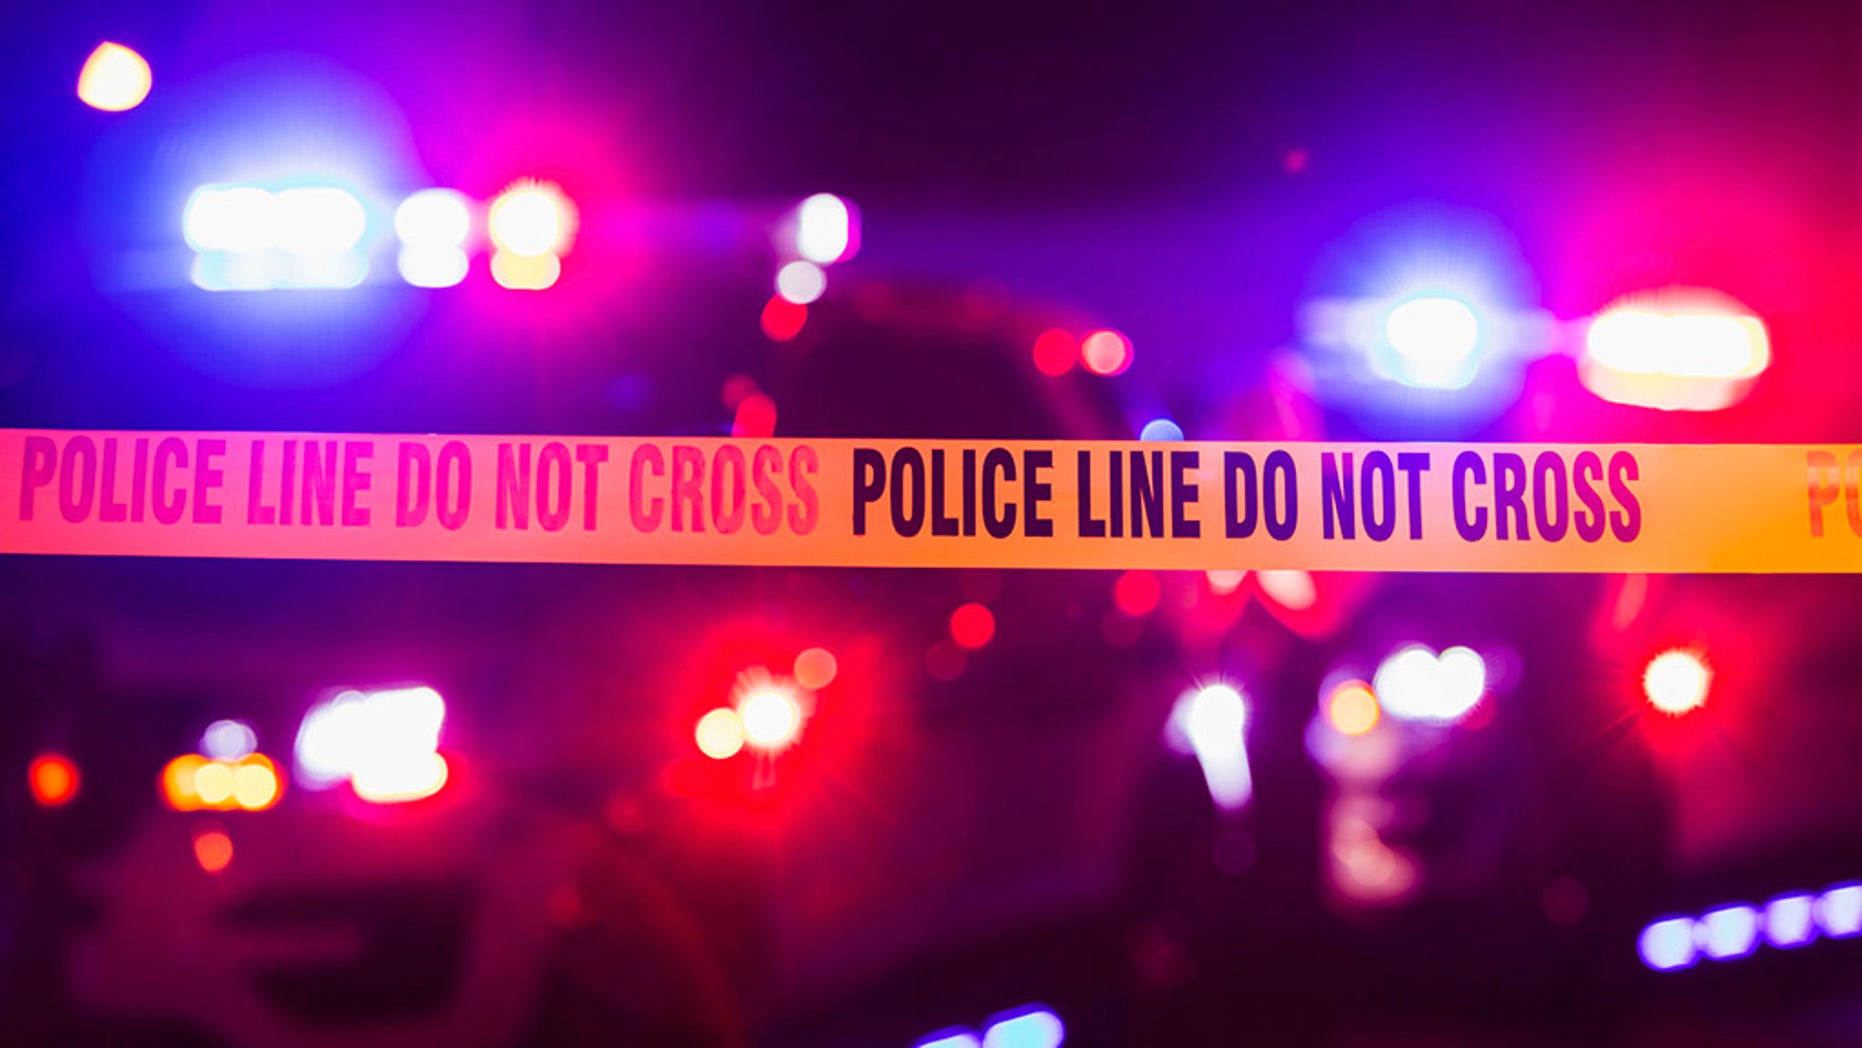 One Ohio sheriff's deputy was killed on Saturday and another was injured in an altercation with a shooter. (iStock)